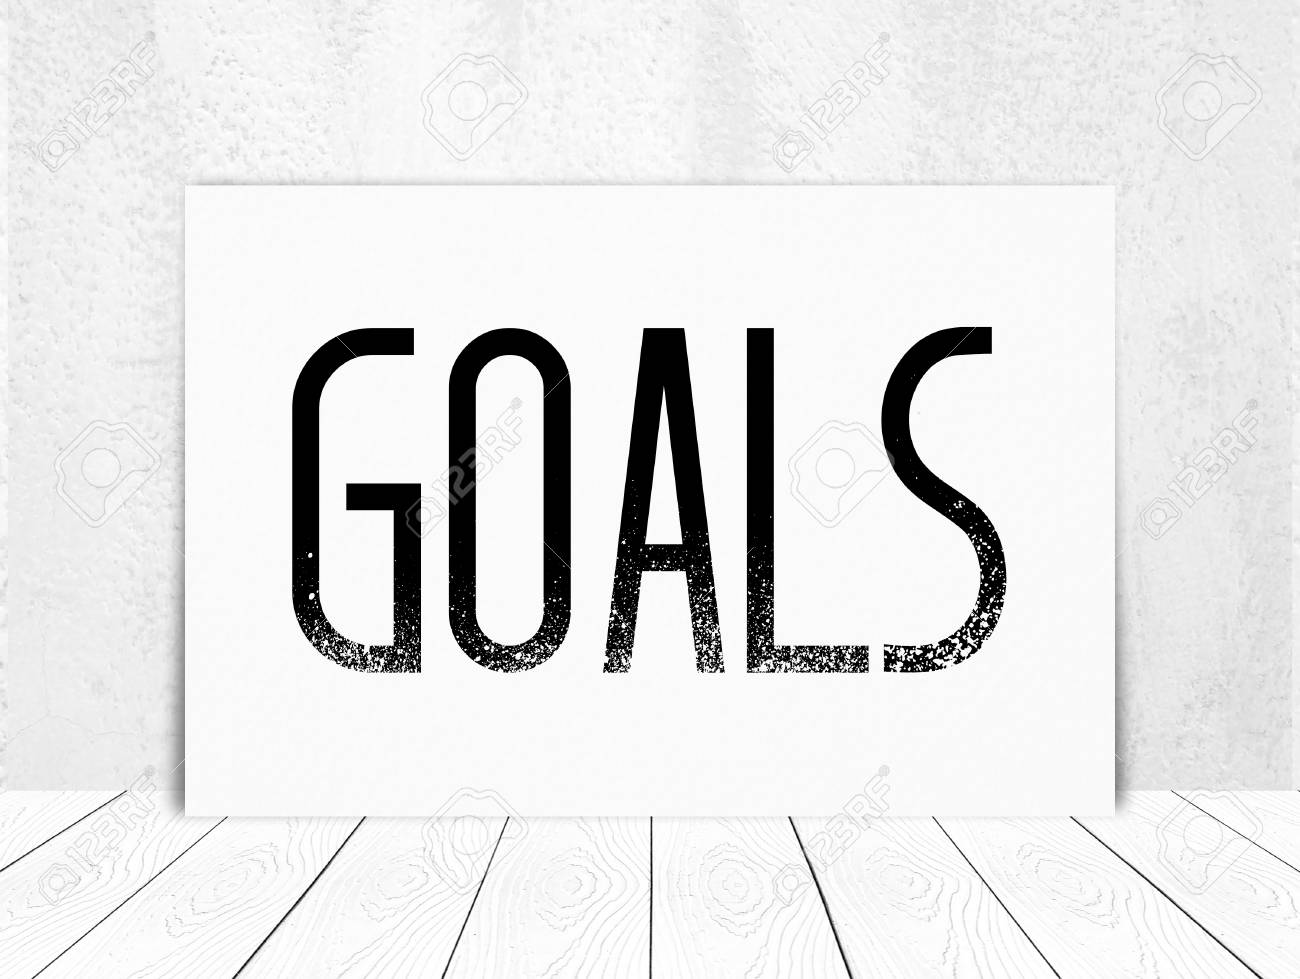 goals on blank white poster board background sucess in business